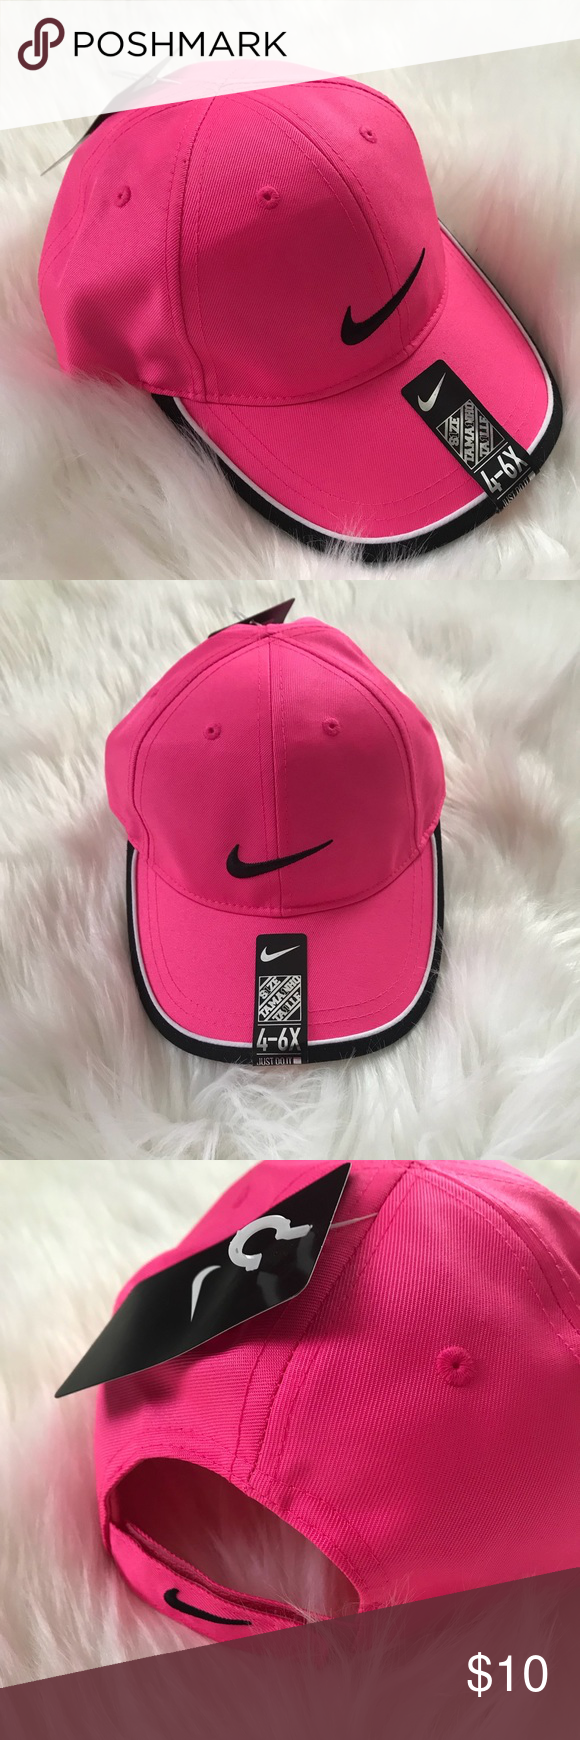 22a3c2586 NWT Kid's 4-6x Pink Nike Cap 🧢 Hat Brand new with tags kid's ...